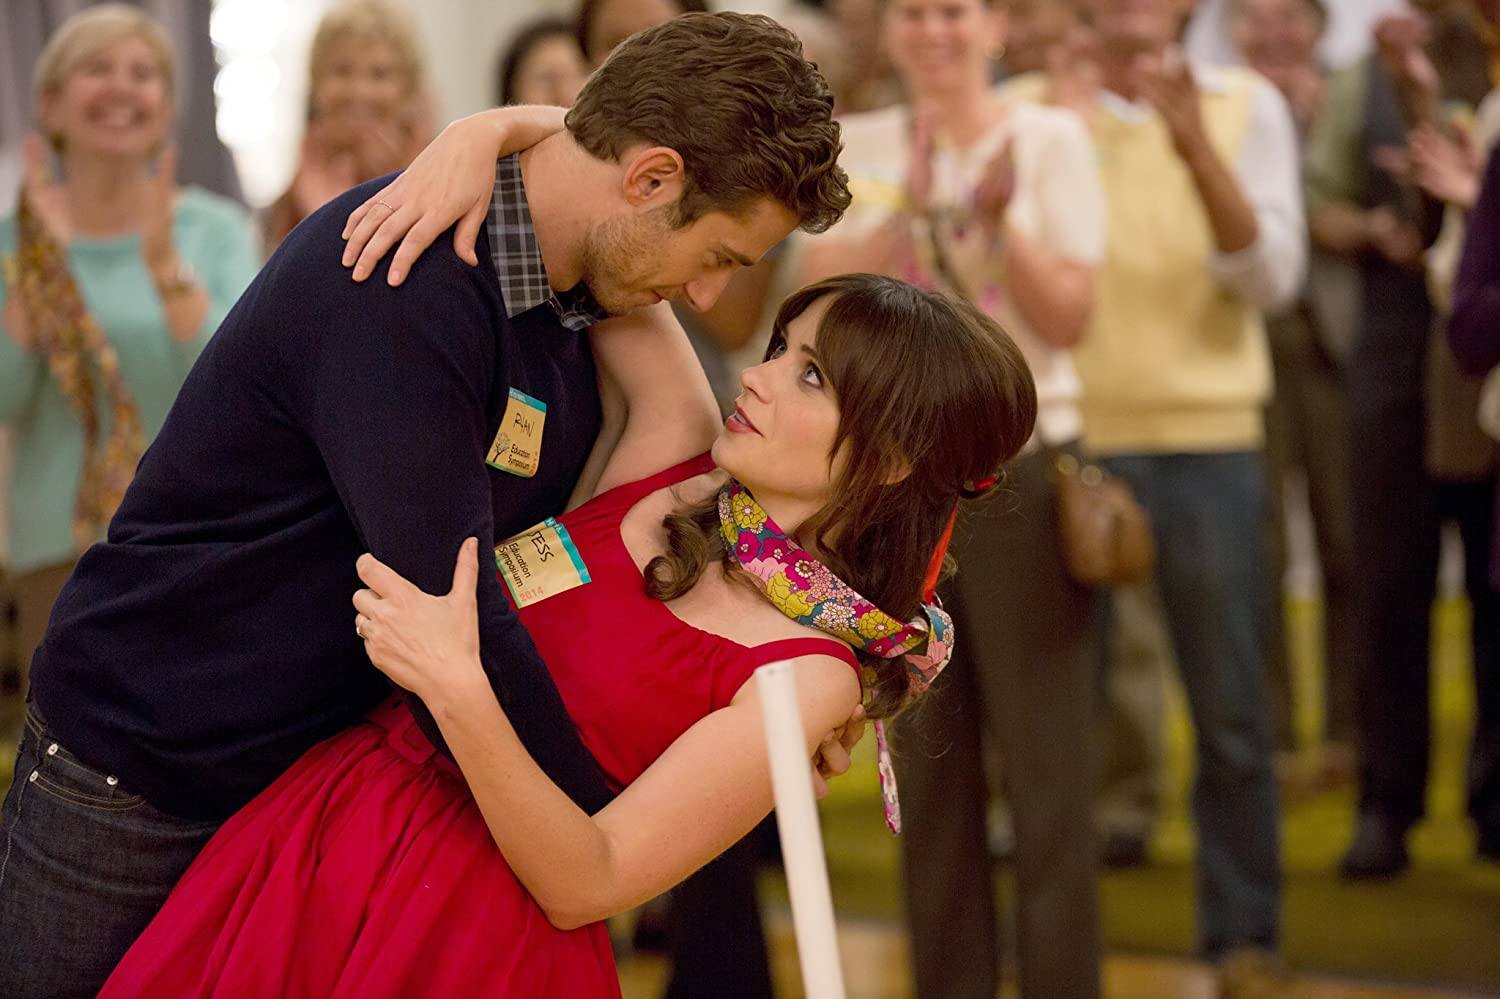 Zooey Deschanel and Julian Morris in New Girl (2011)